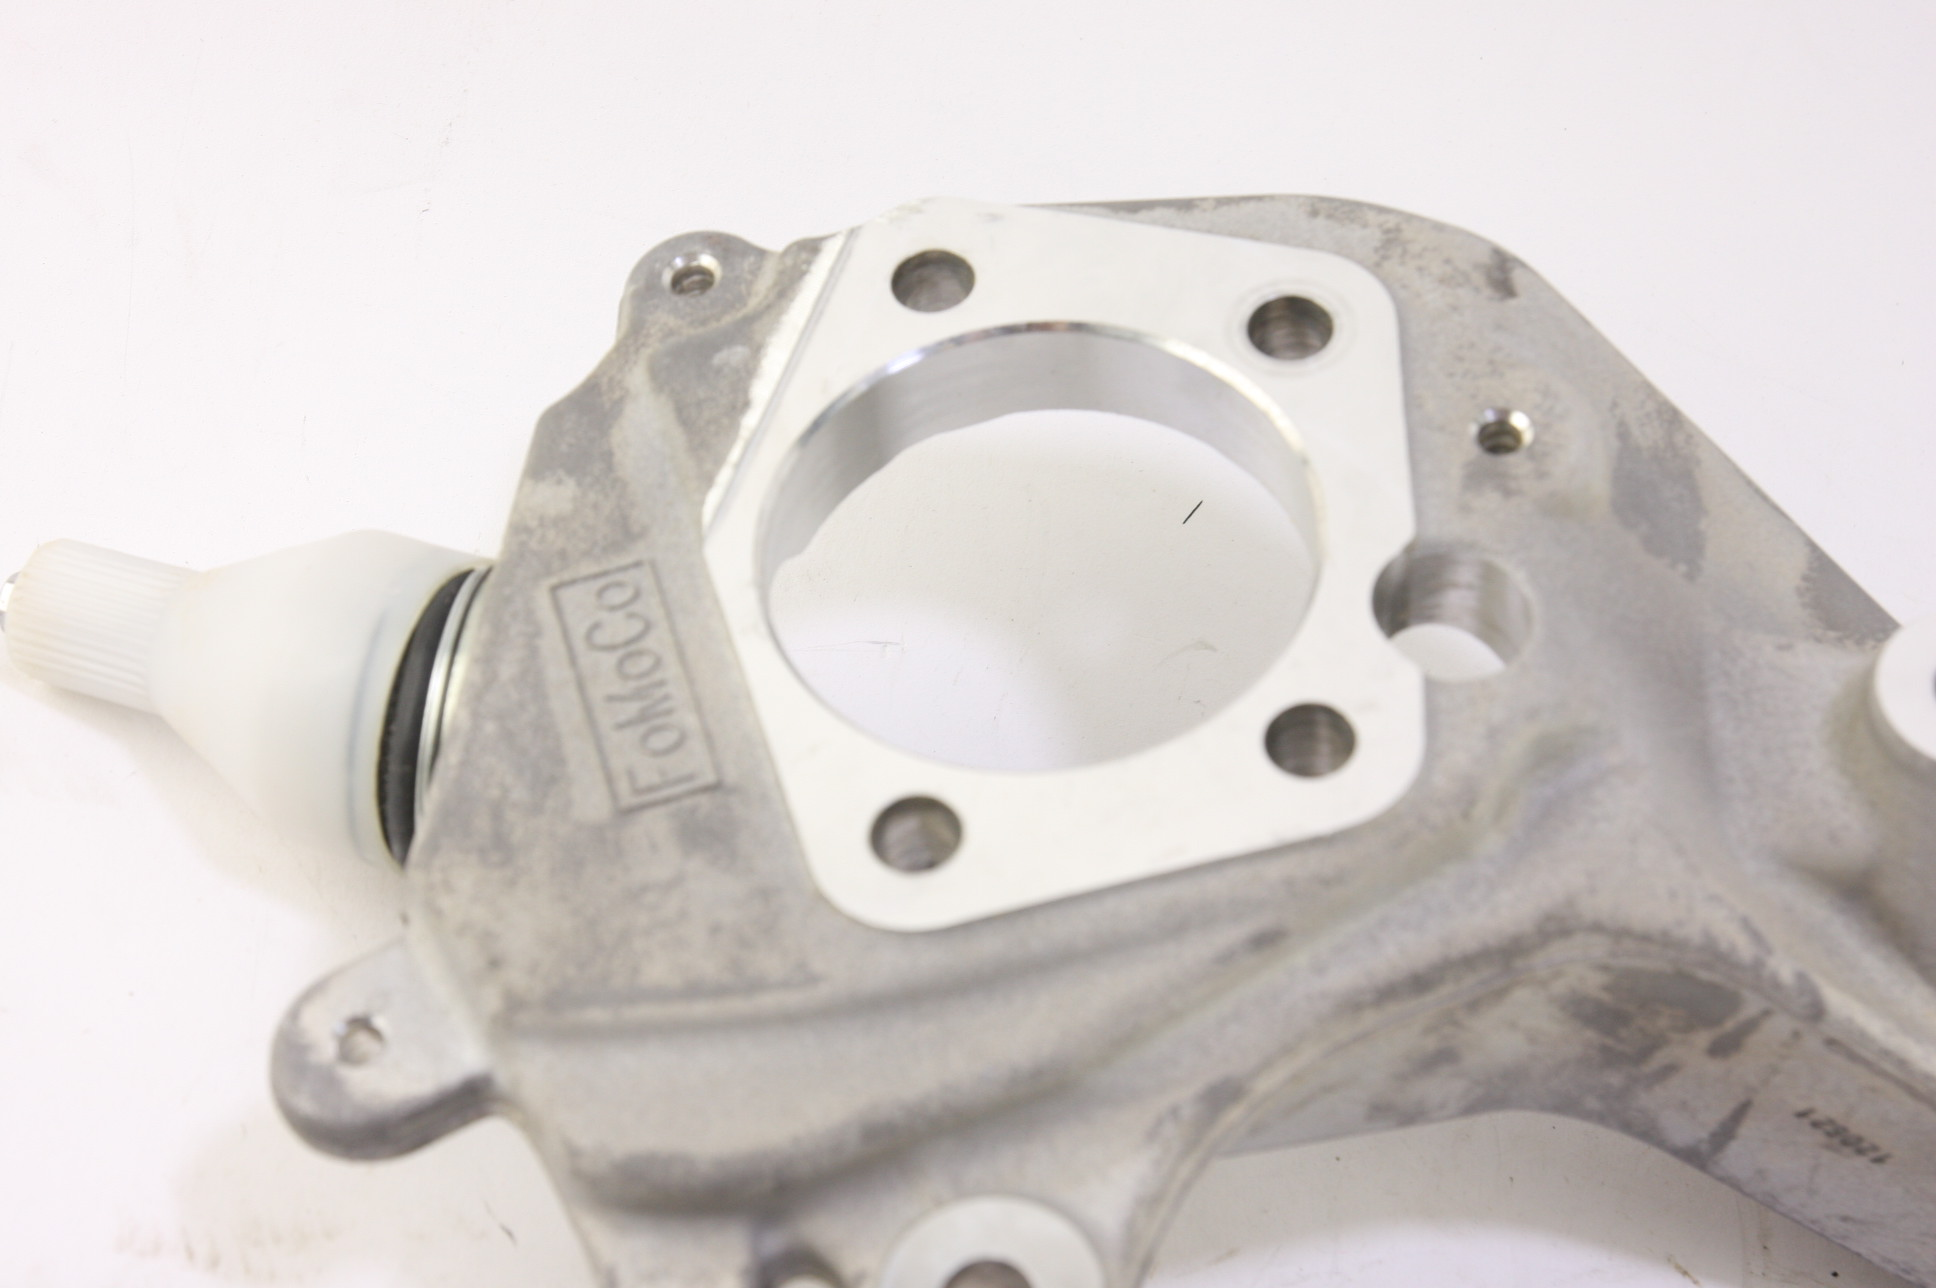 * New OEM Motorcraft MEF70 Steering Knuckle Front Left Ford 4W4Z3K186BA - image 4